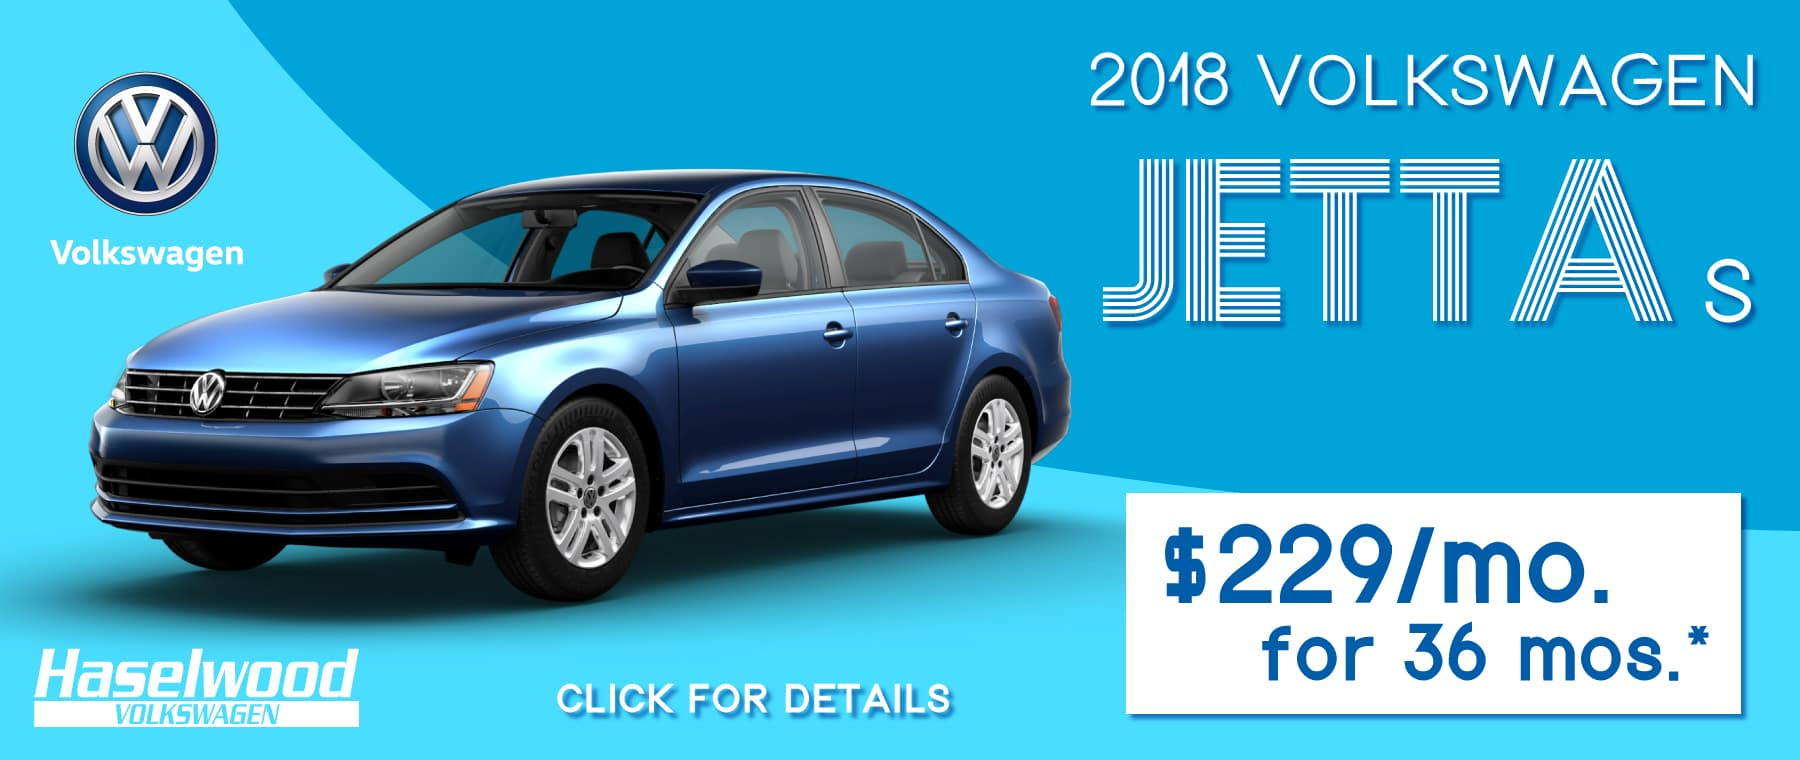 2018 Volkswagen Jetta S   $229/mo. For 36 mos.*